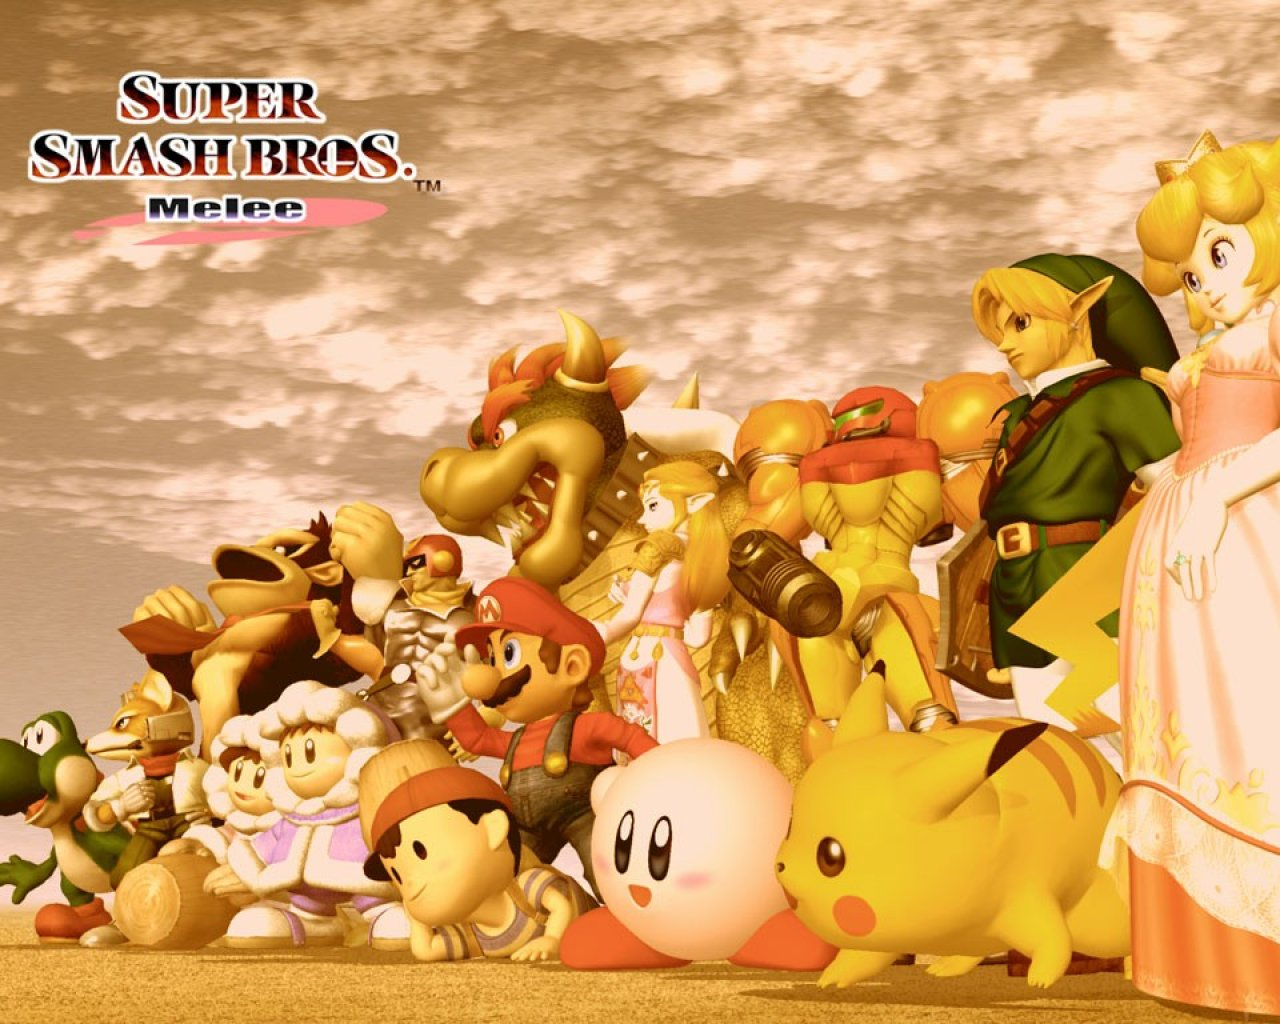 1280 X Super Smash Bros Melee 426050 Hd Wallpaper